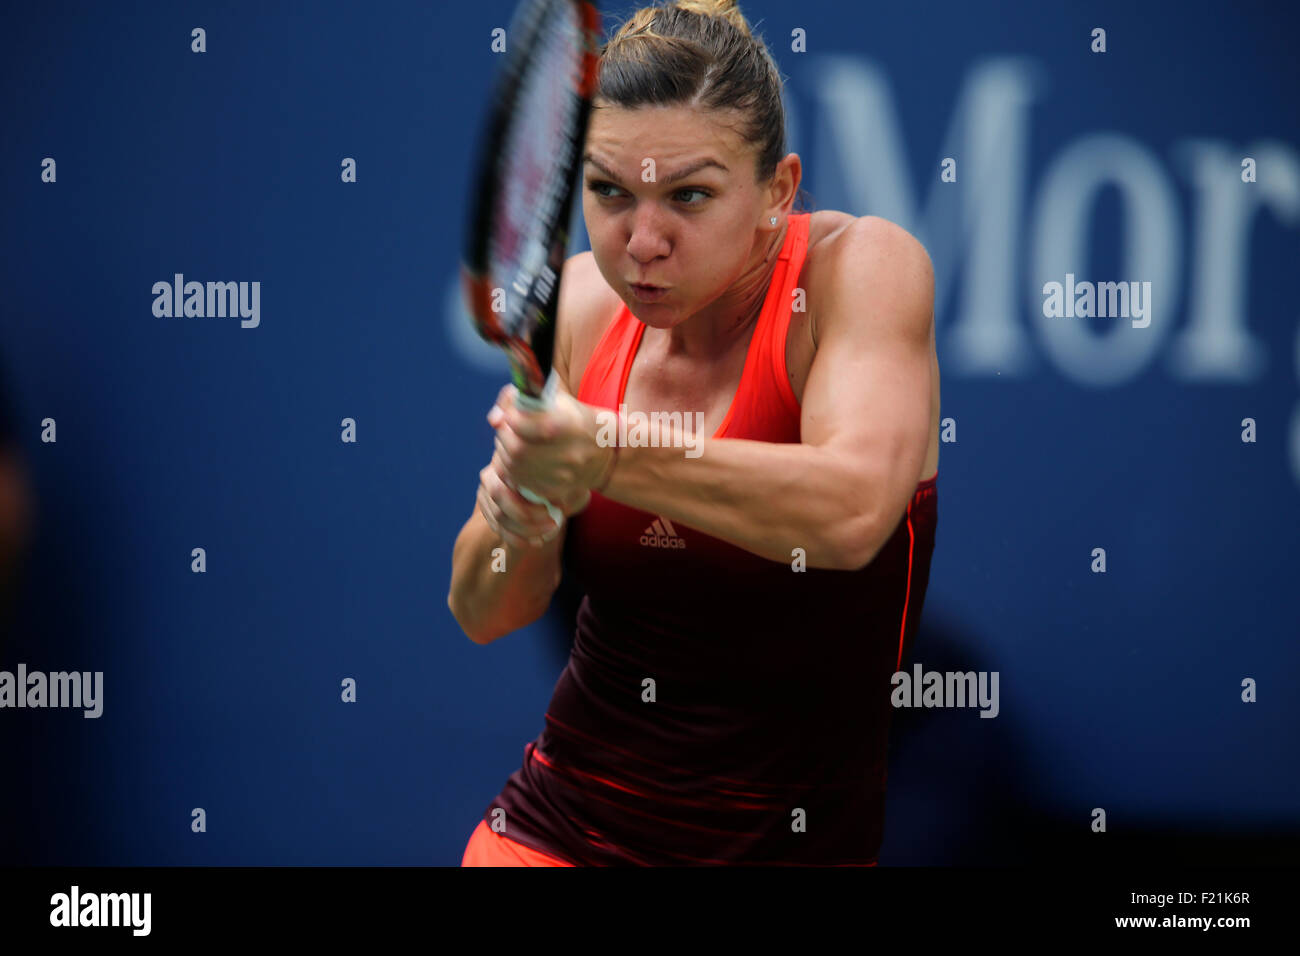 New York, USA. 9th September, 2015. Romania's Simona Halep in action against  Victoria Azaraenka of Belarus - Stock Image